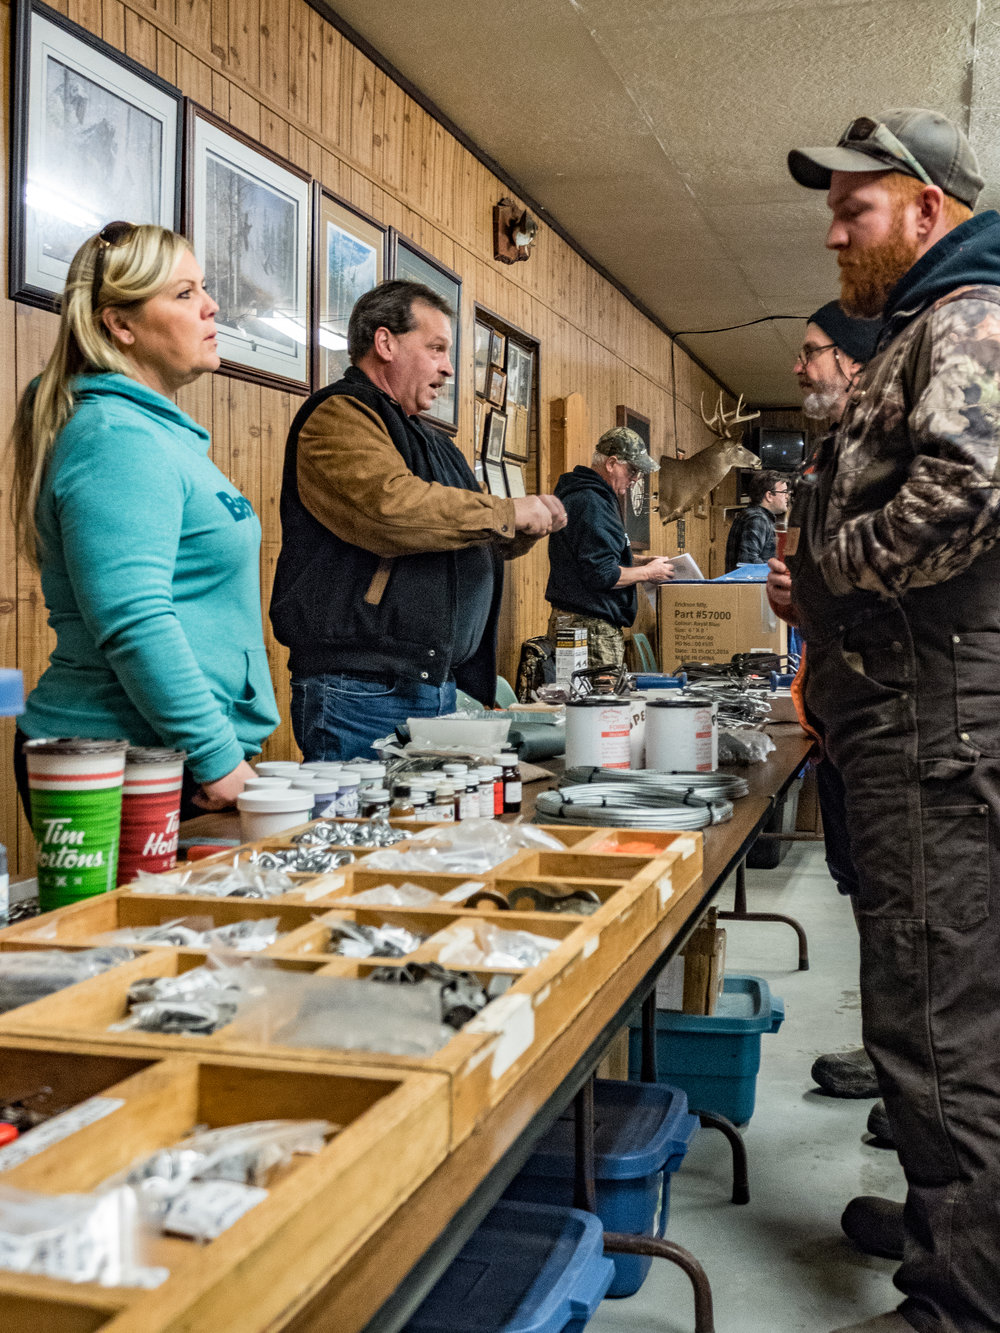 Scott and Cathy Sears, Owners of SAPS Trapping Supplies